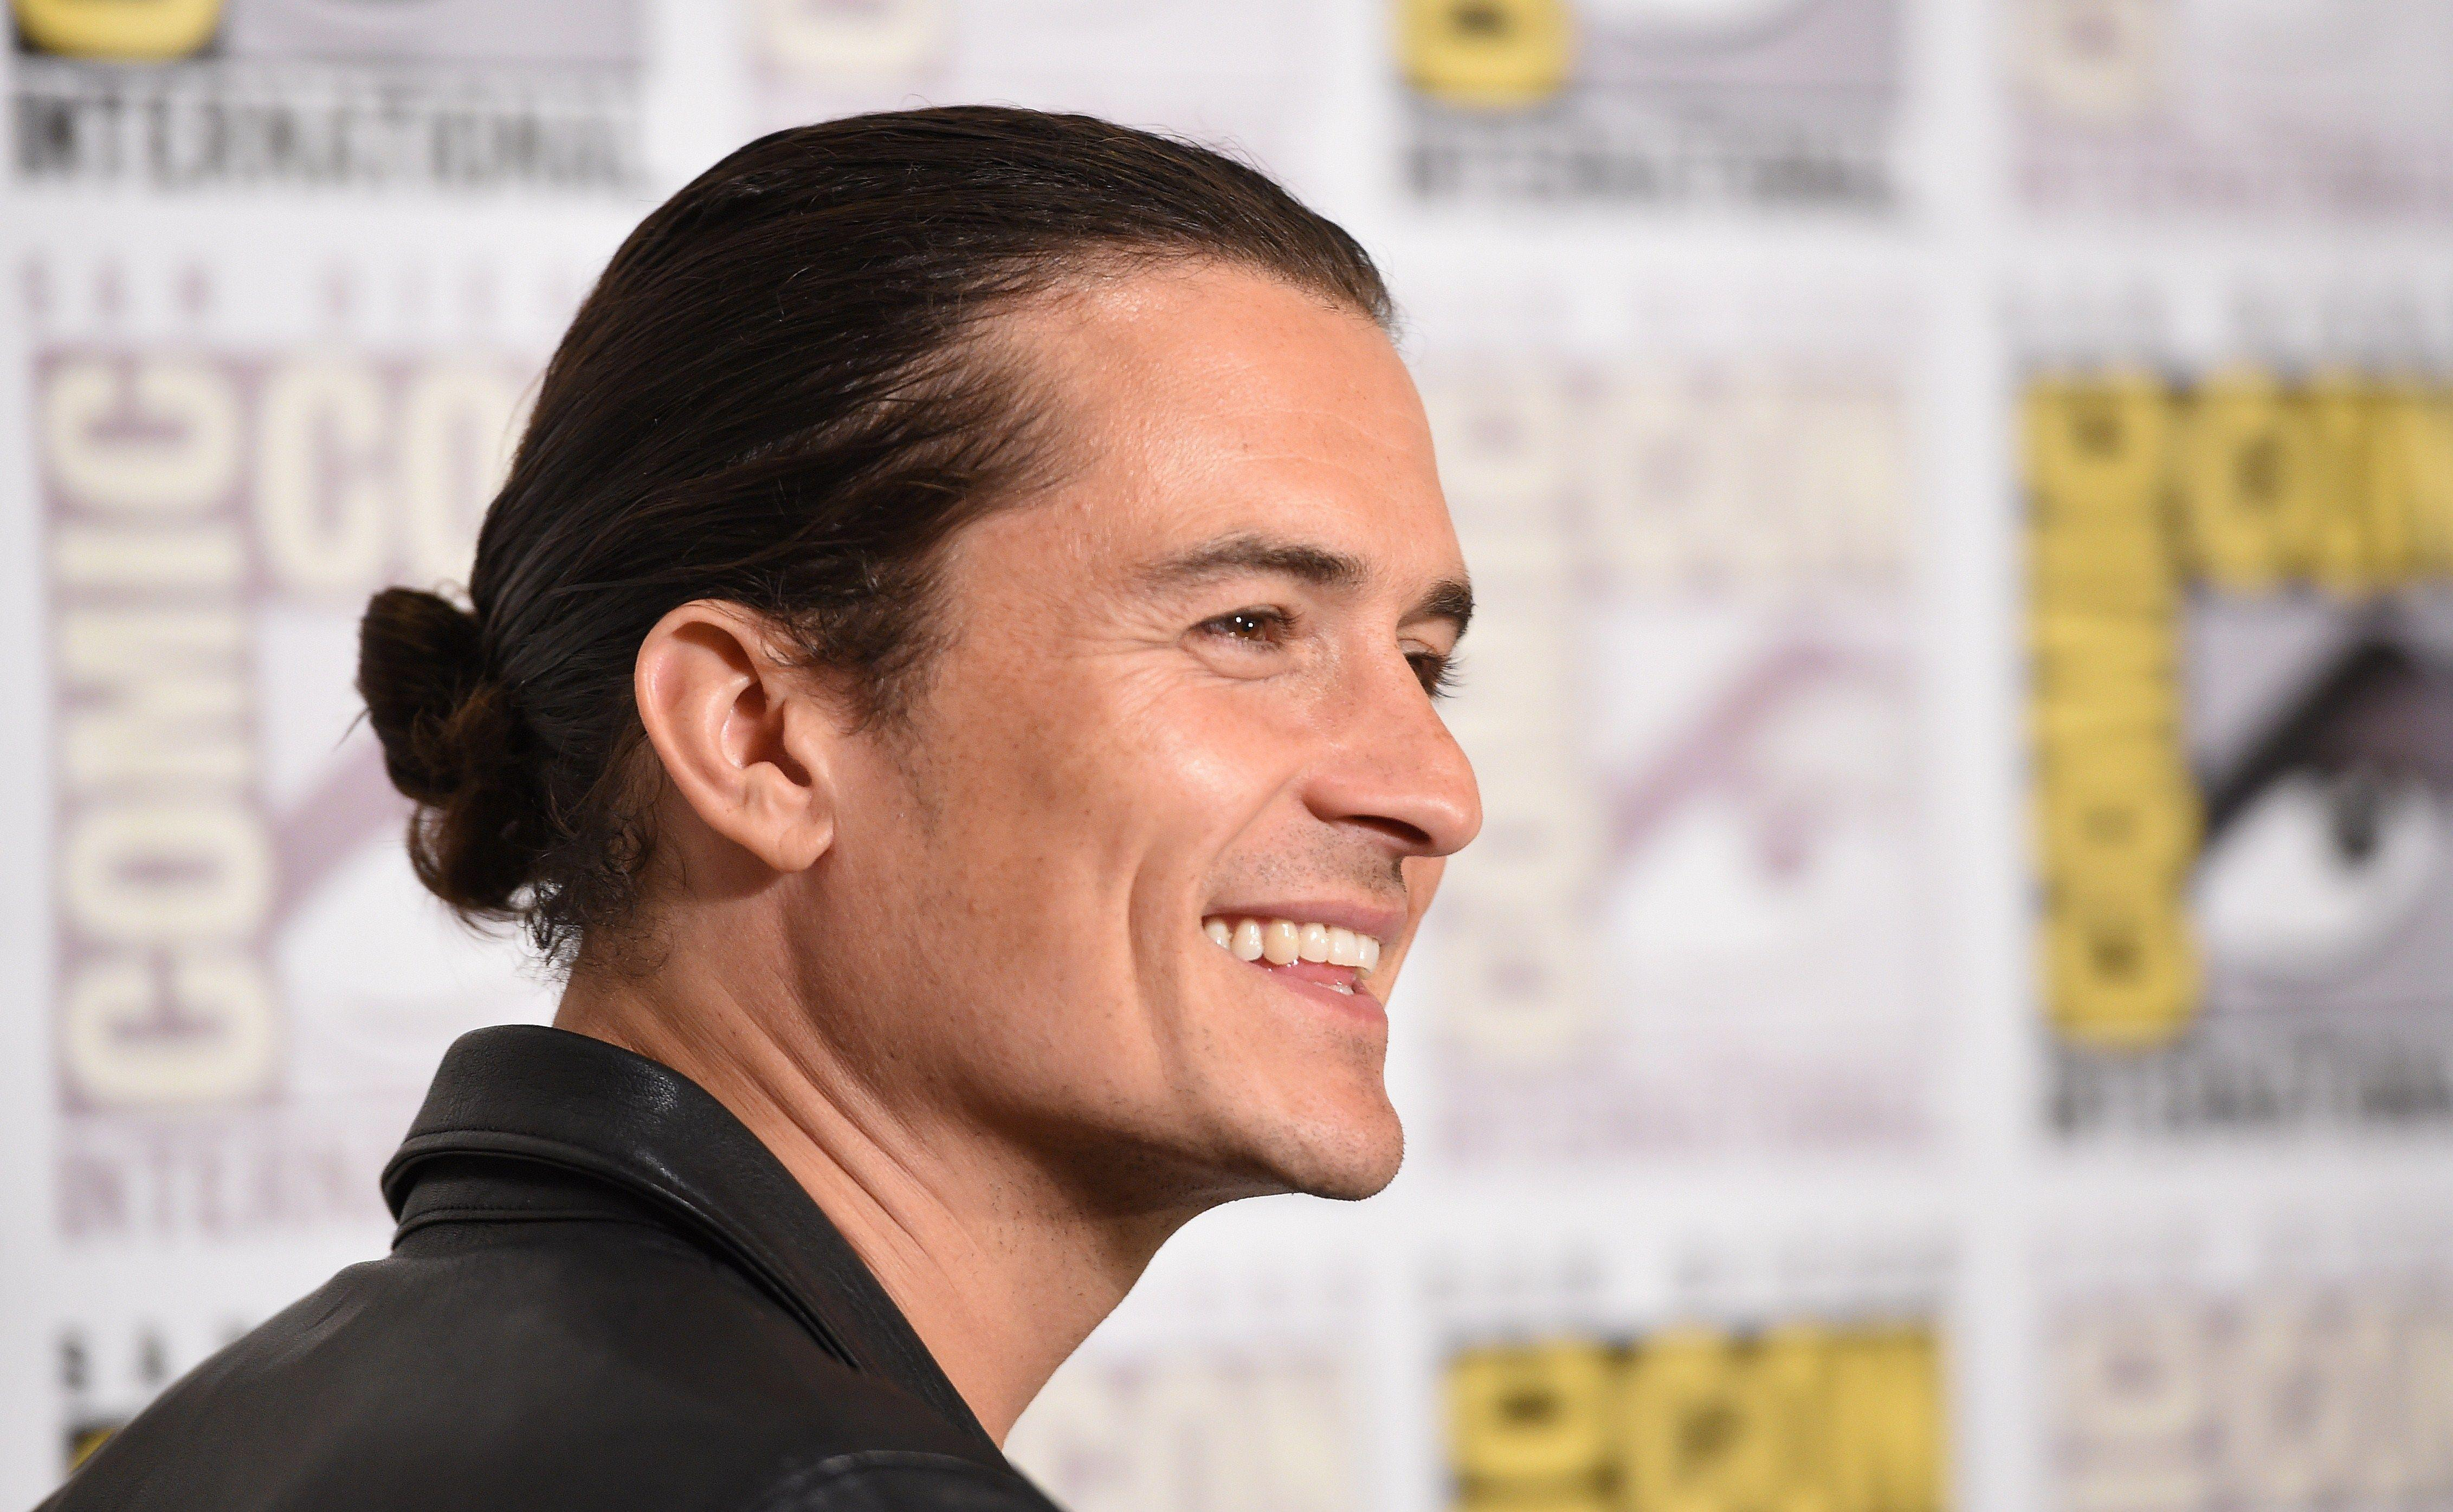 Orlando Bloom Wallpapers Images Photos Pictures Backgrounds